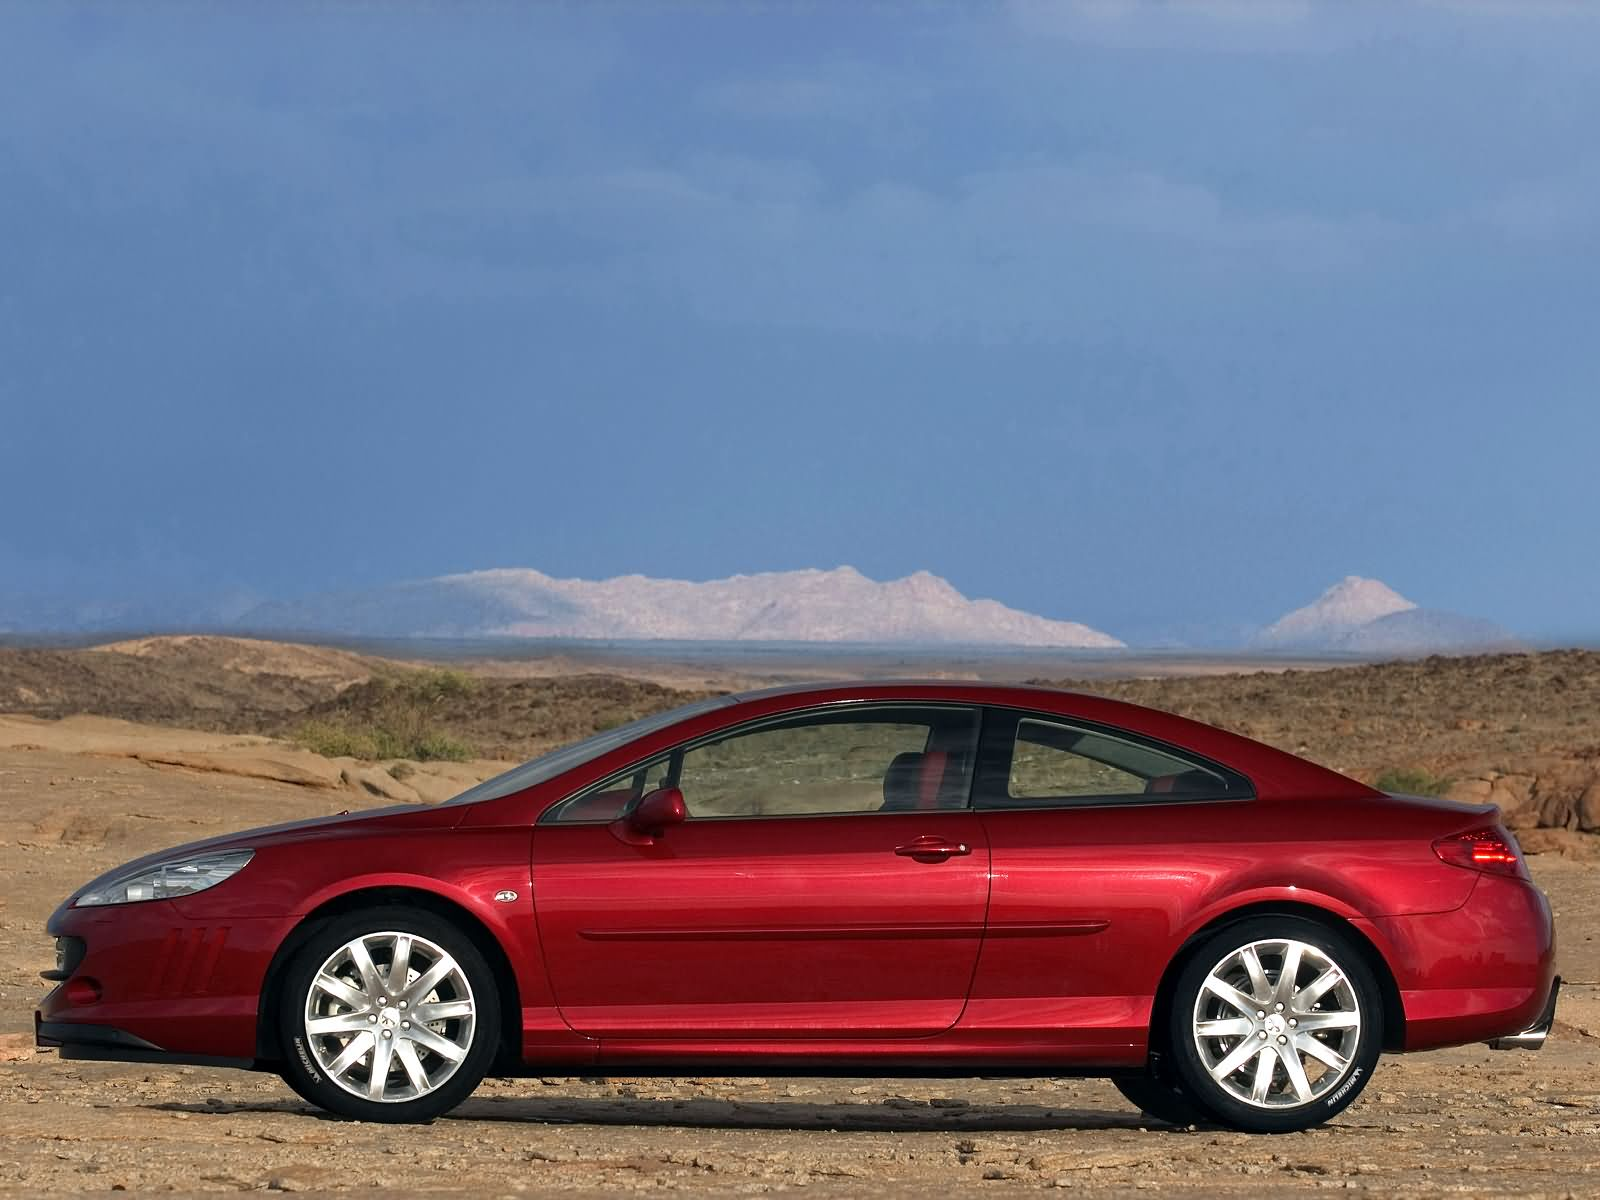 Peugeot 407 Prologue photo 20975